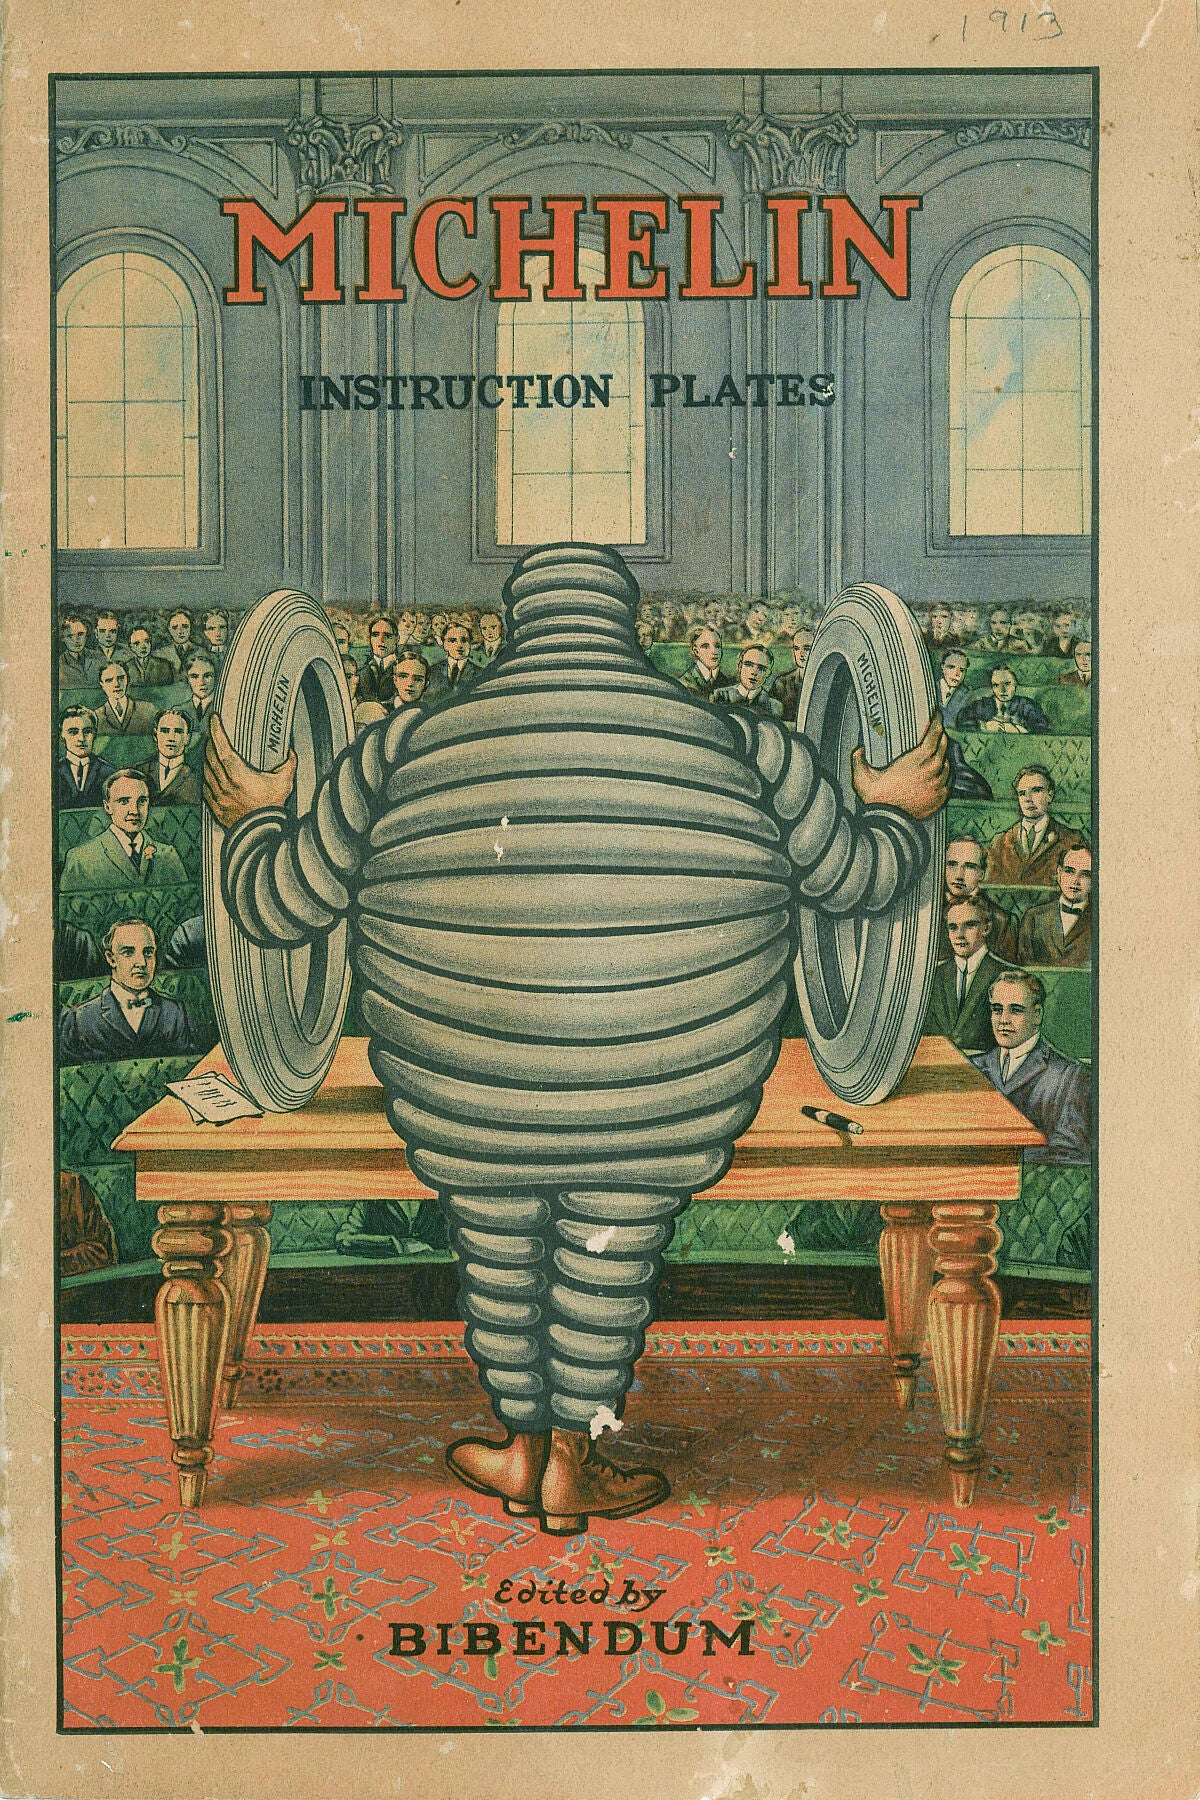 Michelin Instruction Plates - 1913